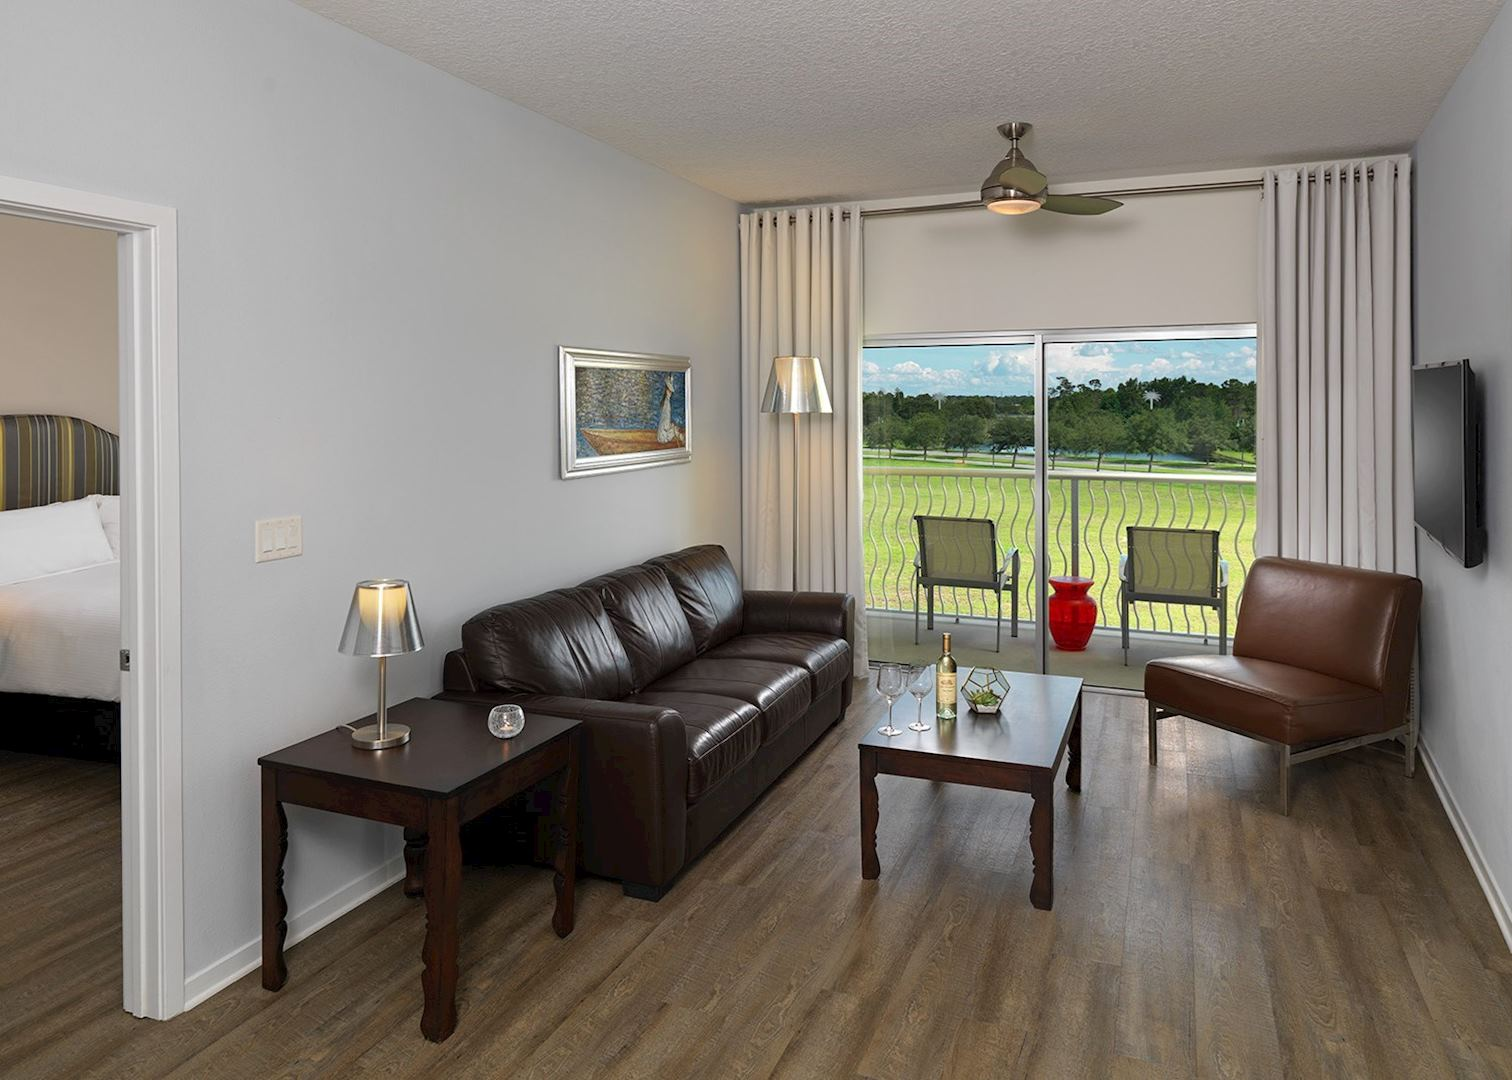 Melia orlando suite hotel usa audley travel for Orlando two bedroom suite hotels